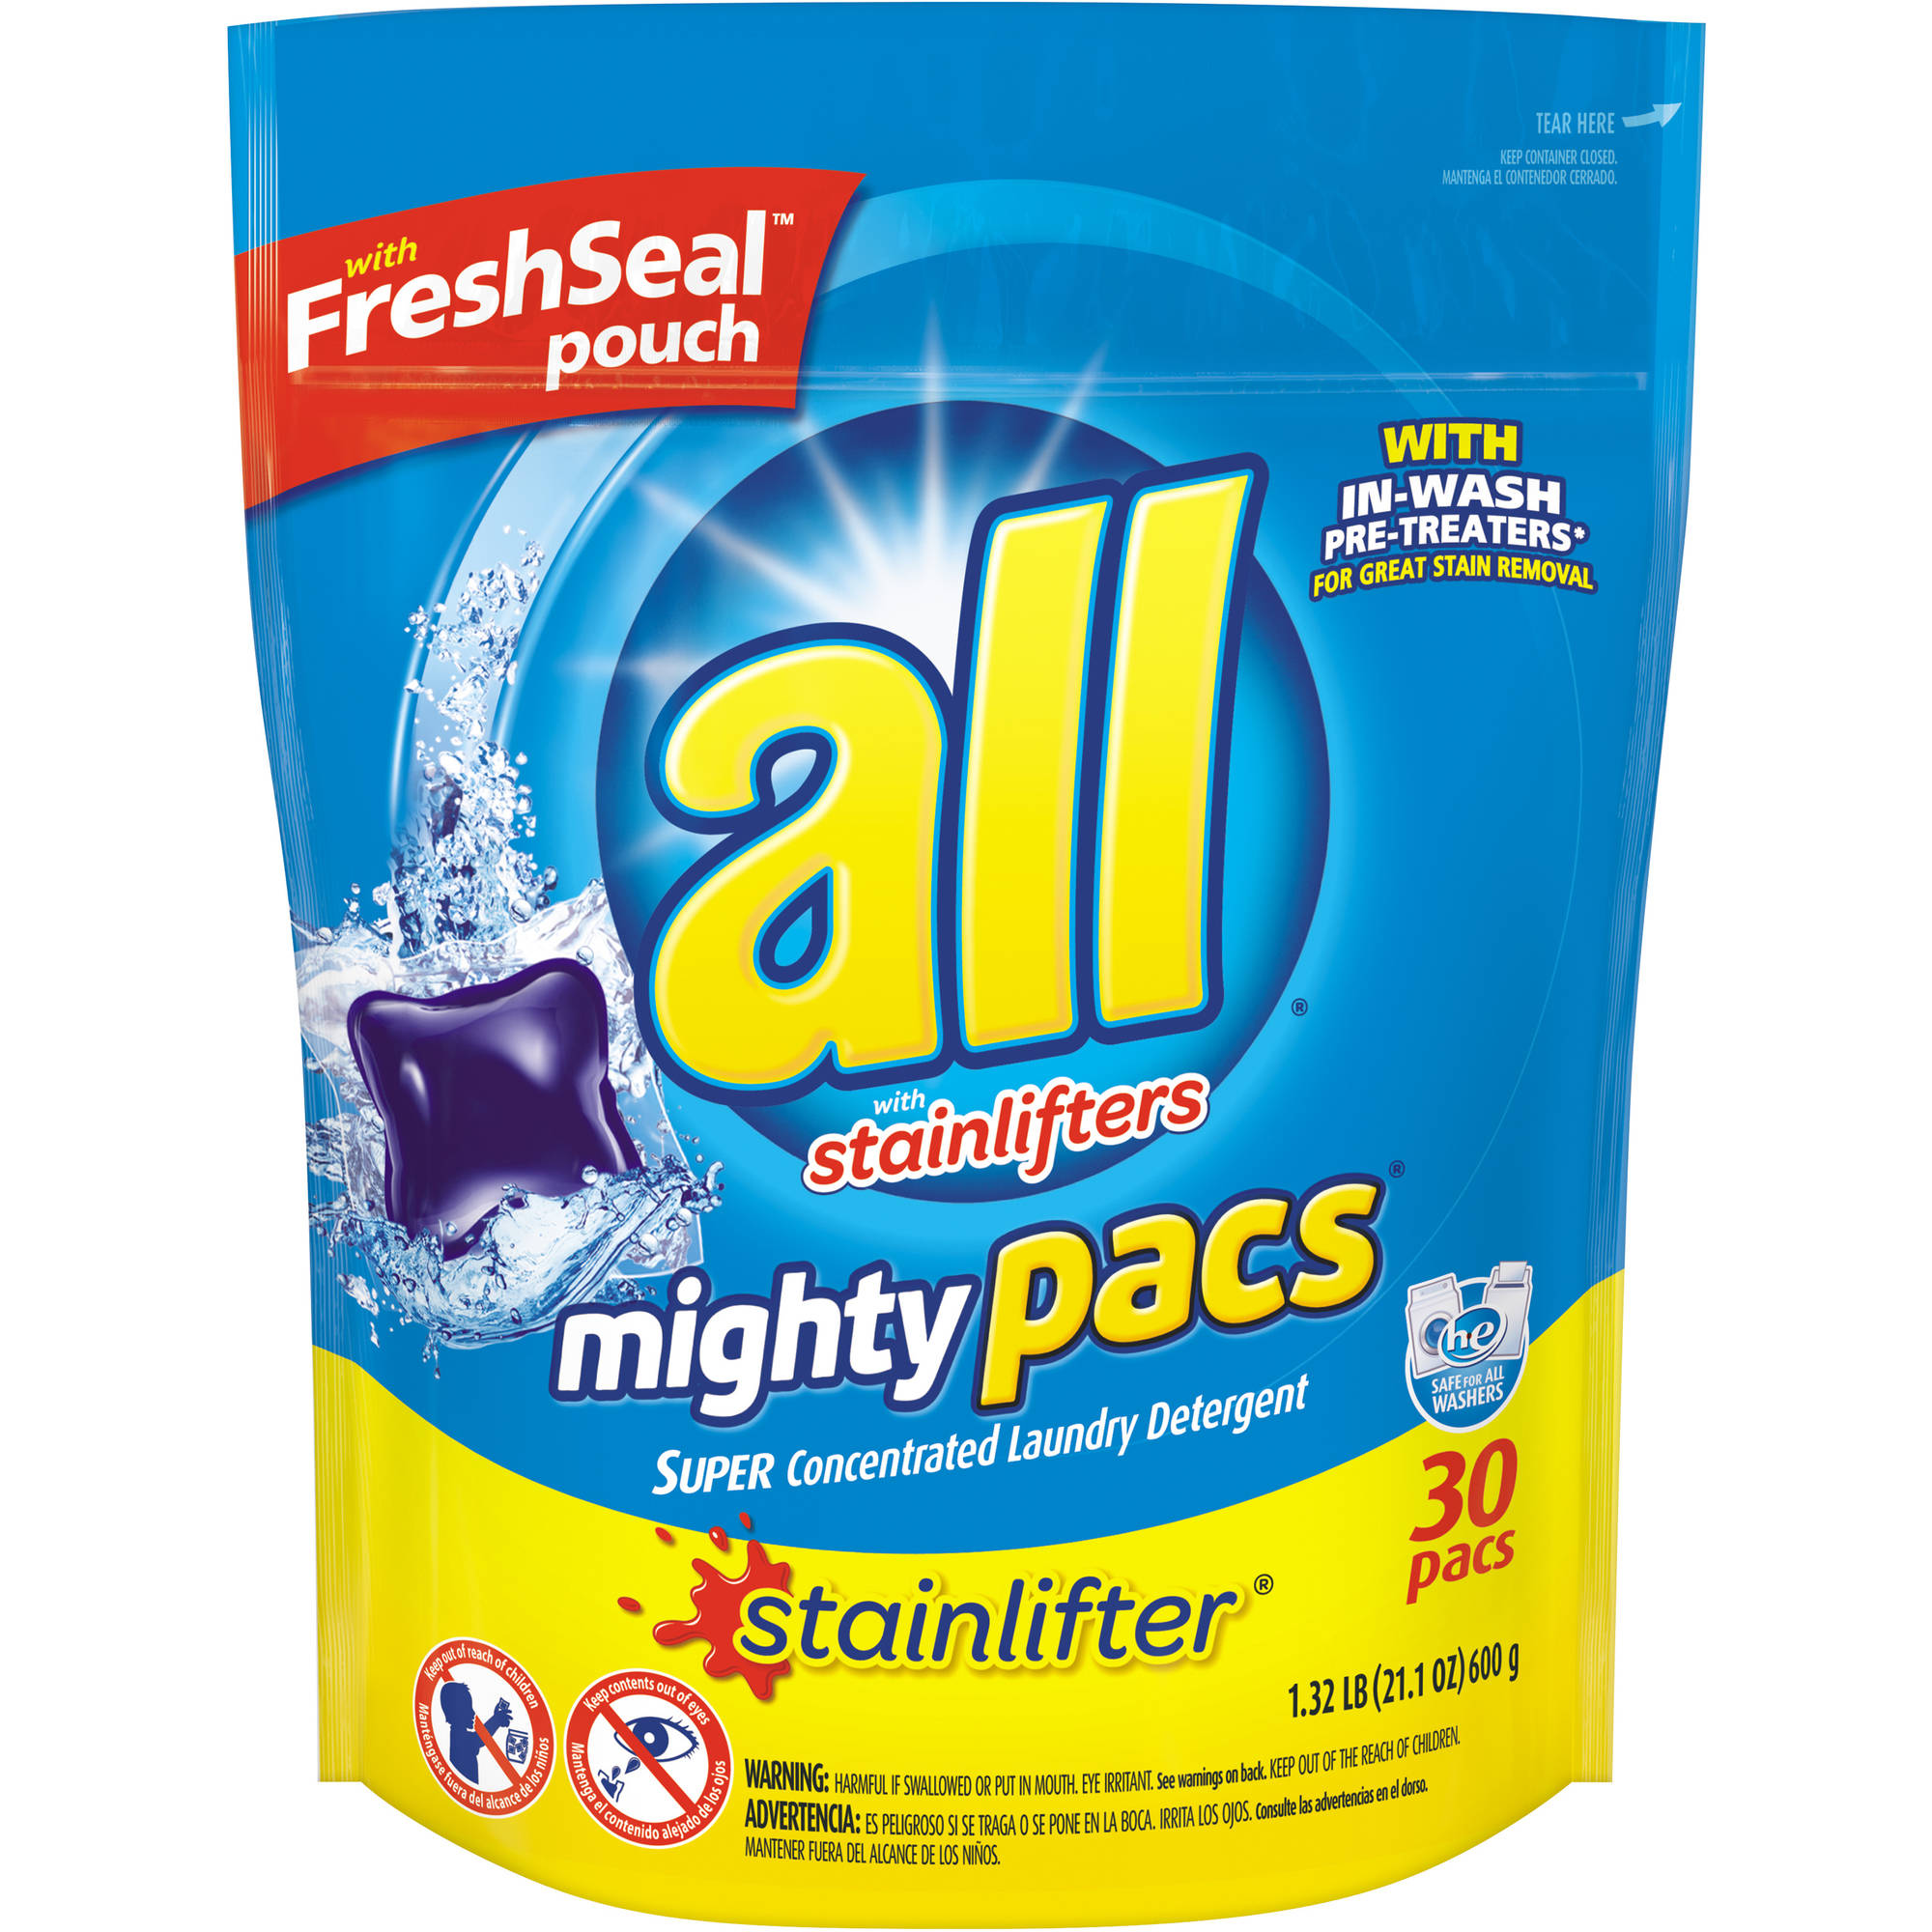 All Mighty Pacs Stainlifter Super Concentrated Laundry Detergent Pacs, 30 count, 21.1 oz